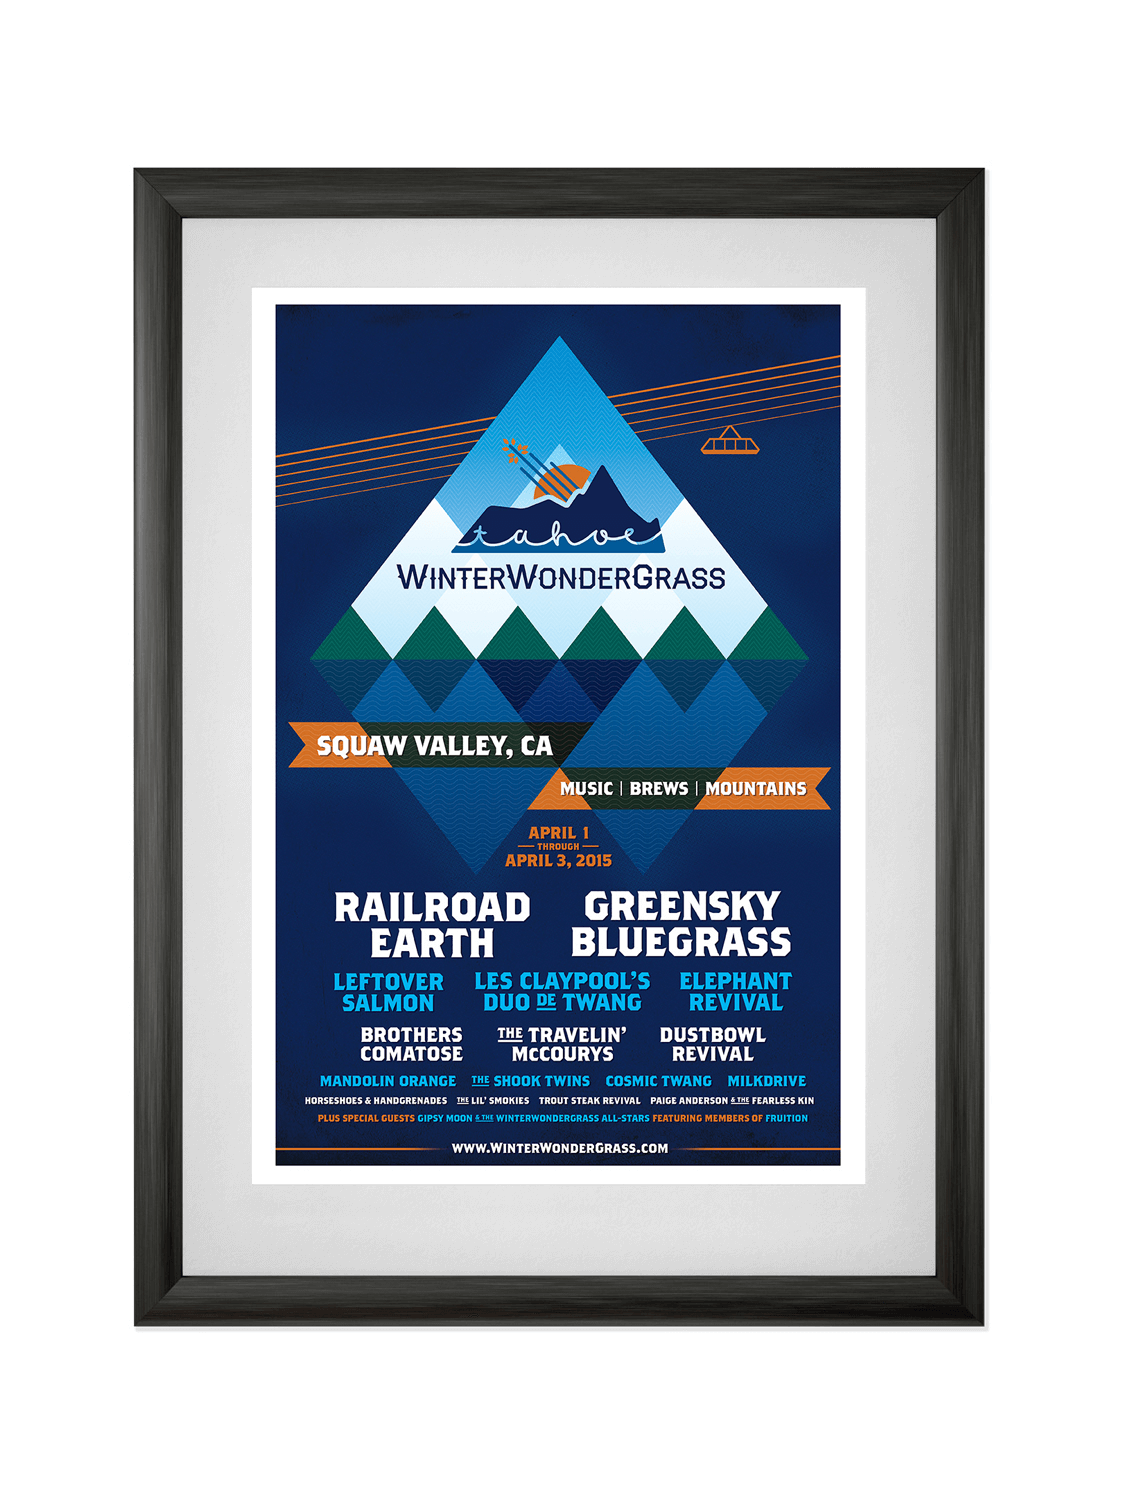 WINTER WONDERGRASS • SQUAW VALLEY 2016  Poster for a winter music festival in Squaw Valley, CA, featuring bluegrass and craft beer. Learn more.